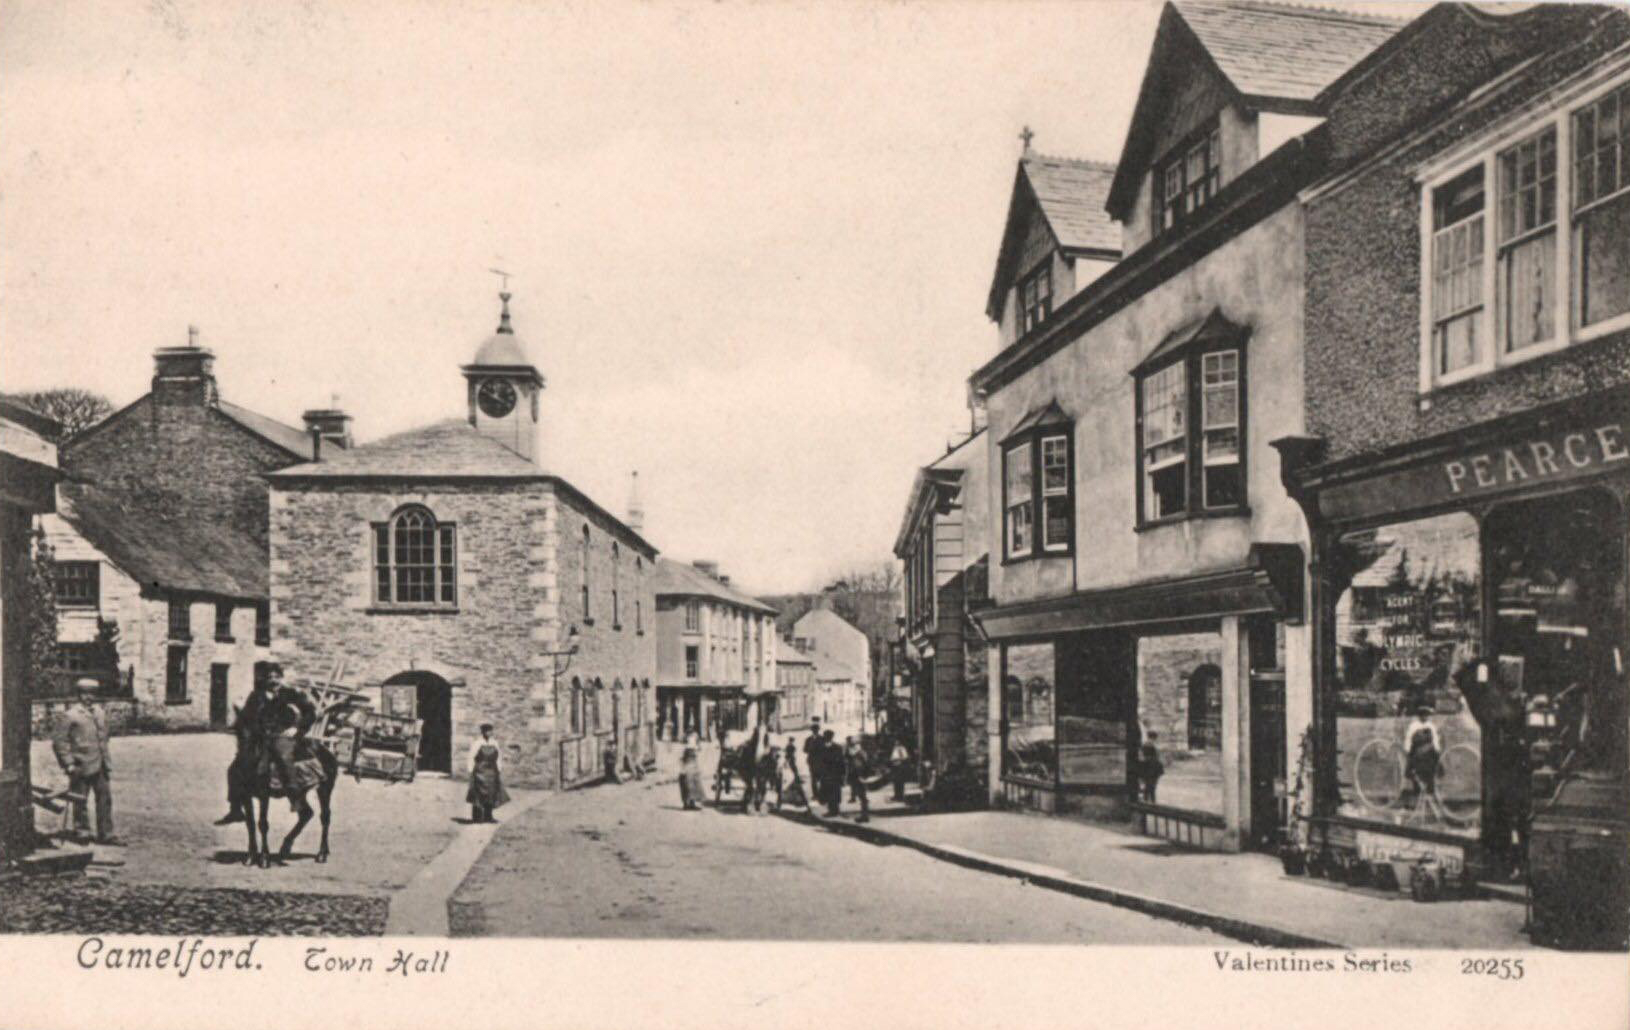 History of Camelford